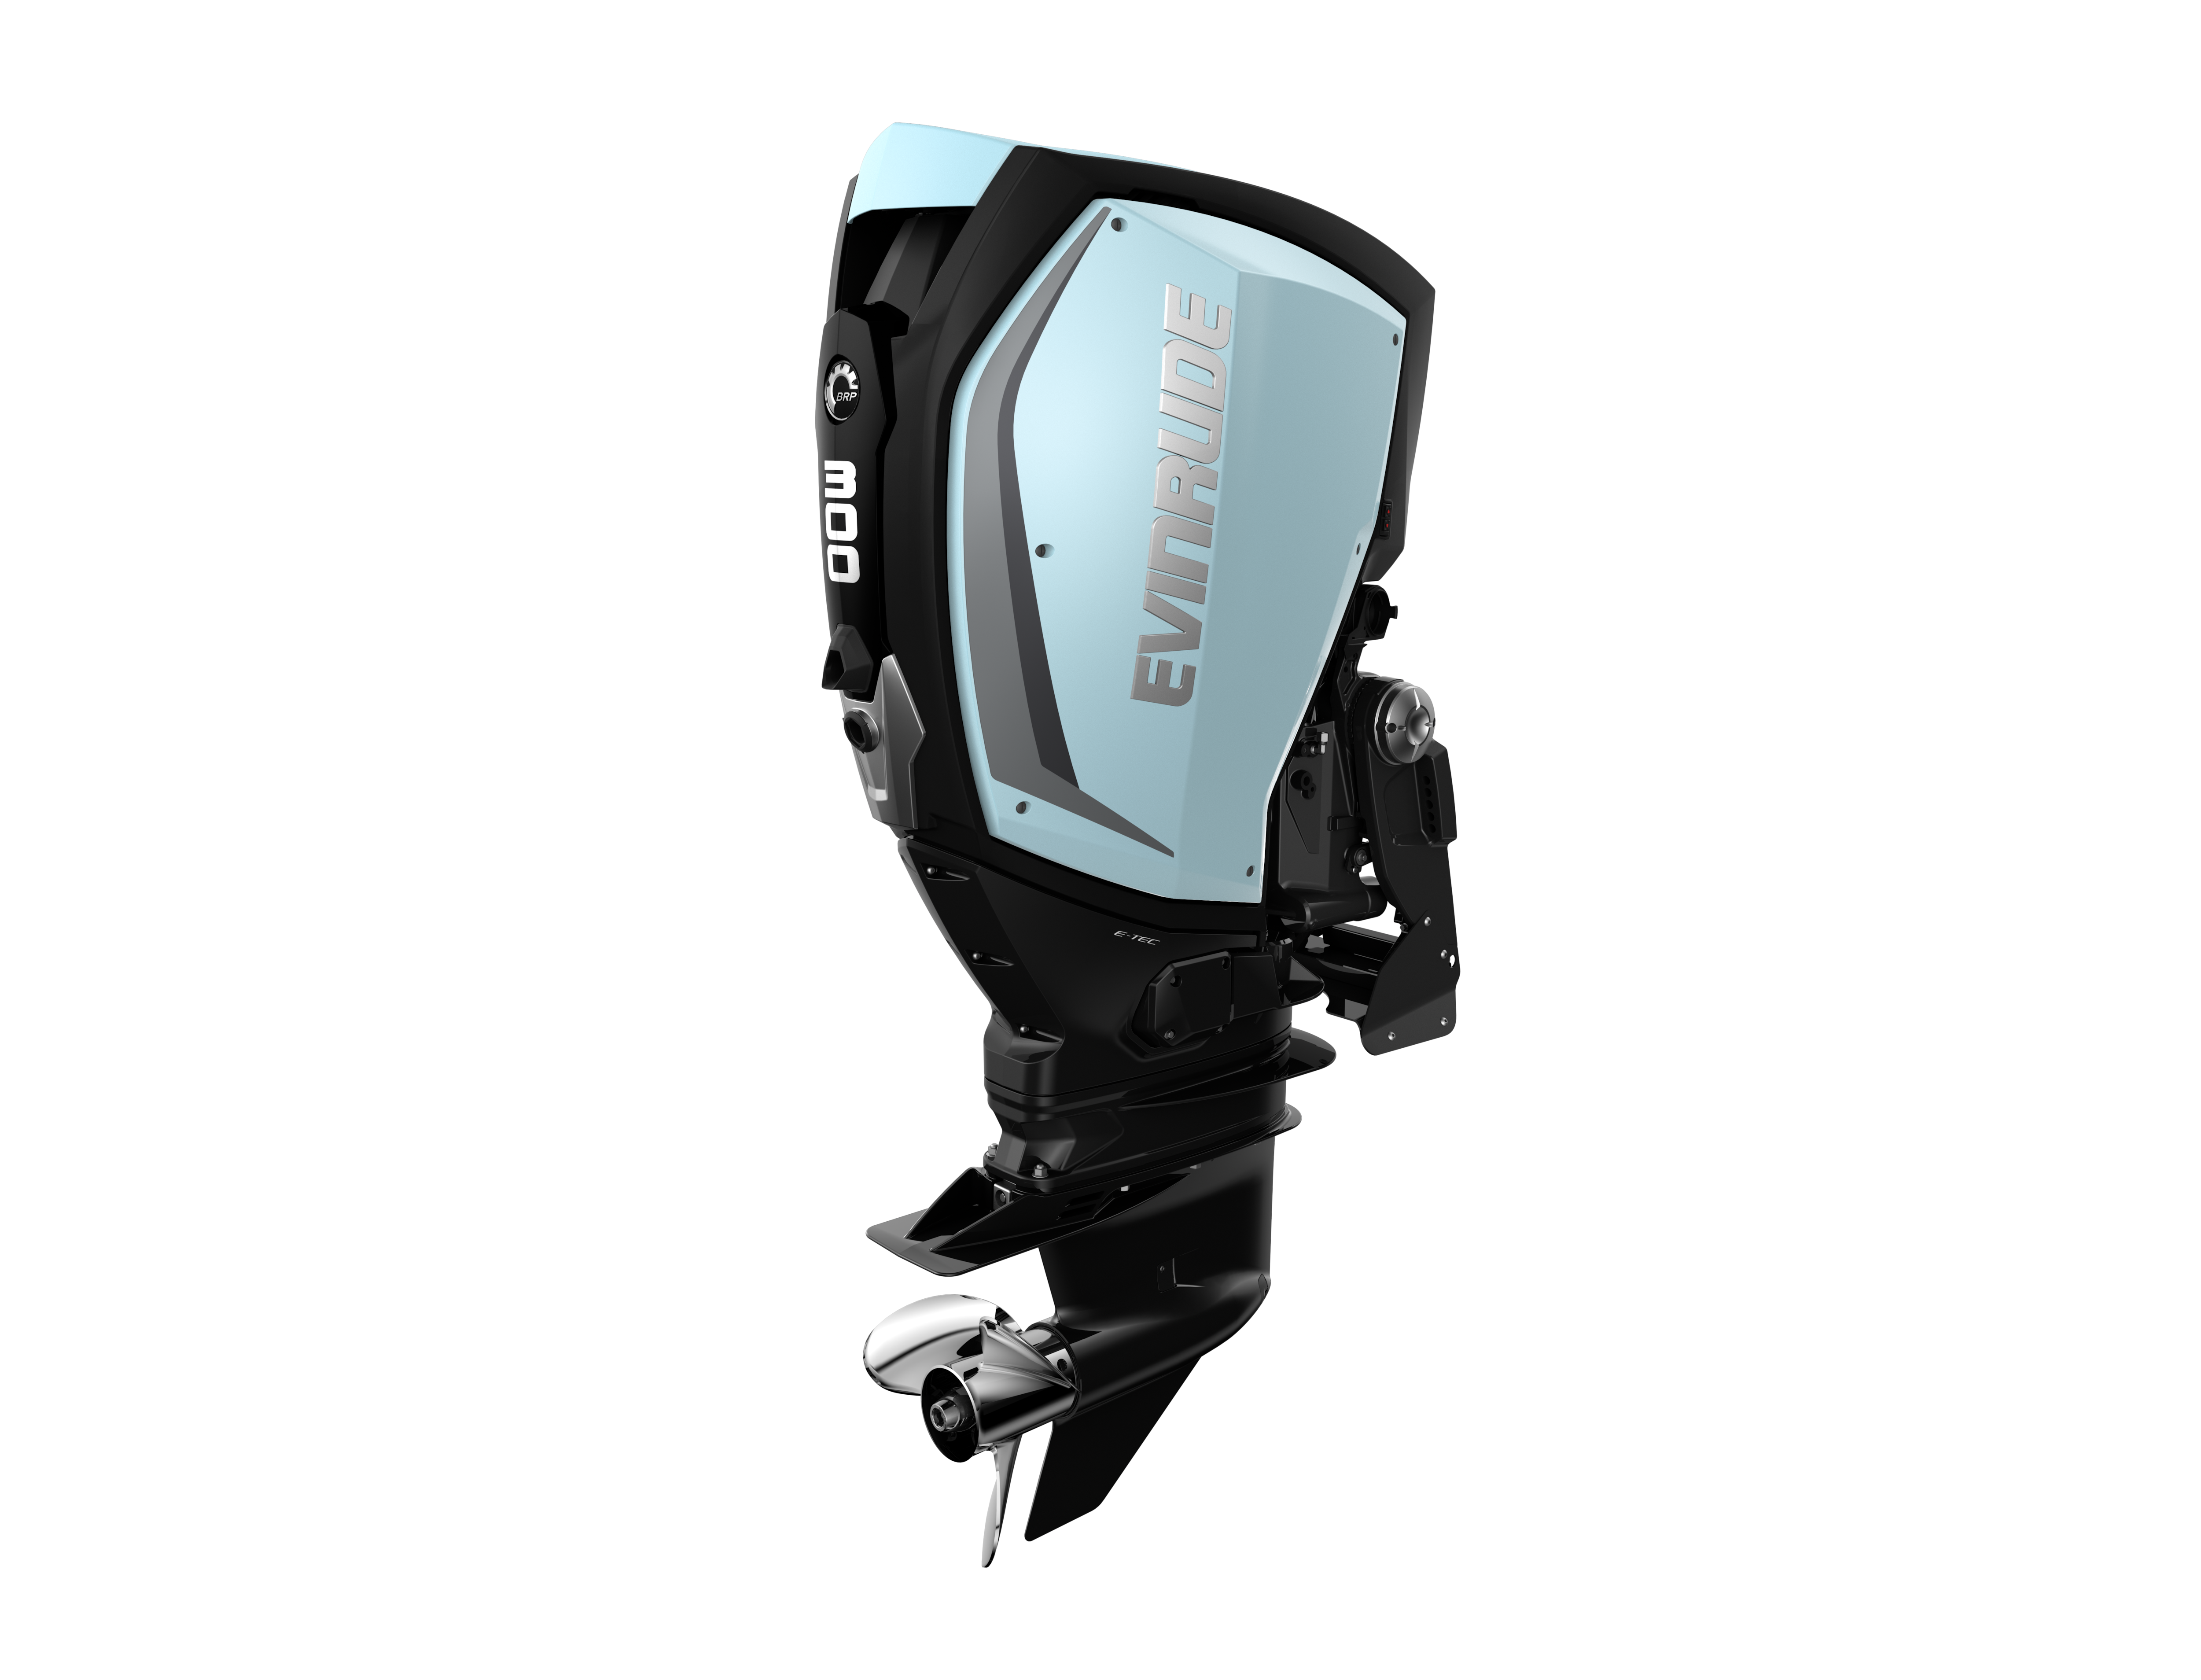 E-tec G2 Outboard Motor 2019 by Evinrude